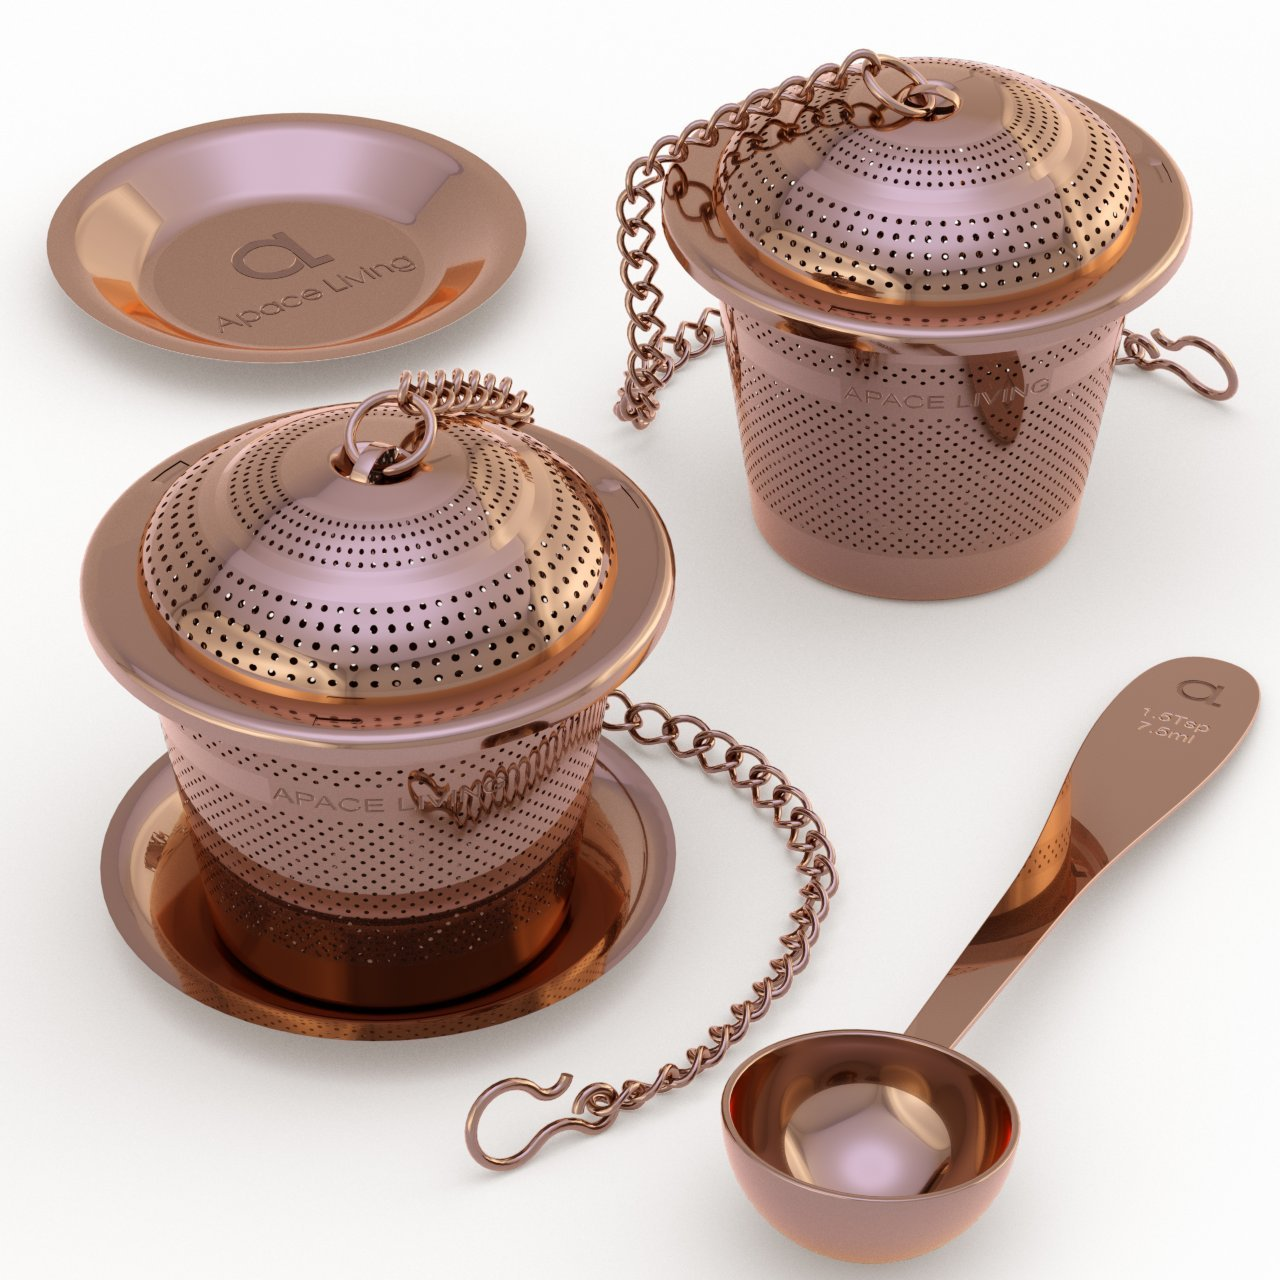 Apace Large Tea Infuser (Set of 2) with Tea Scoop and Drip Trays – Multi Cup Size Stainless Steel Loose Leaf Tea Strainer and Steeper